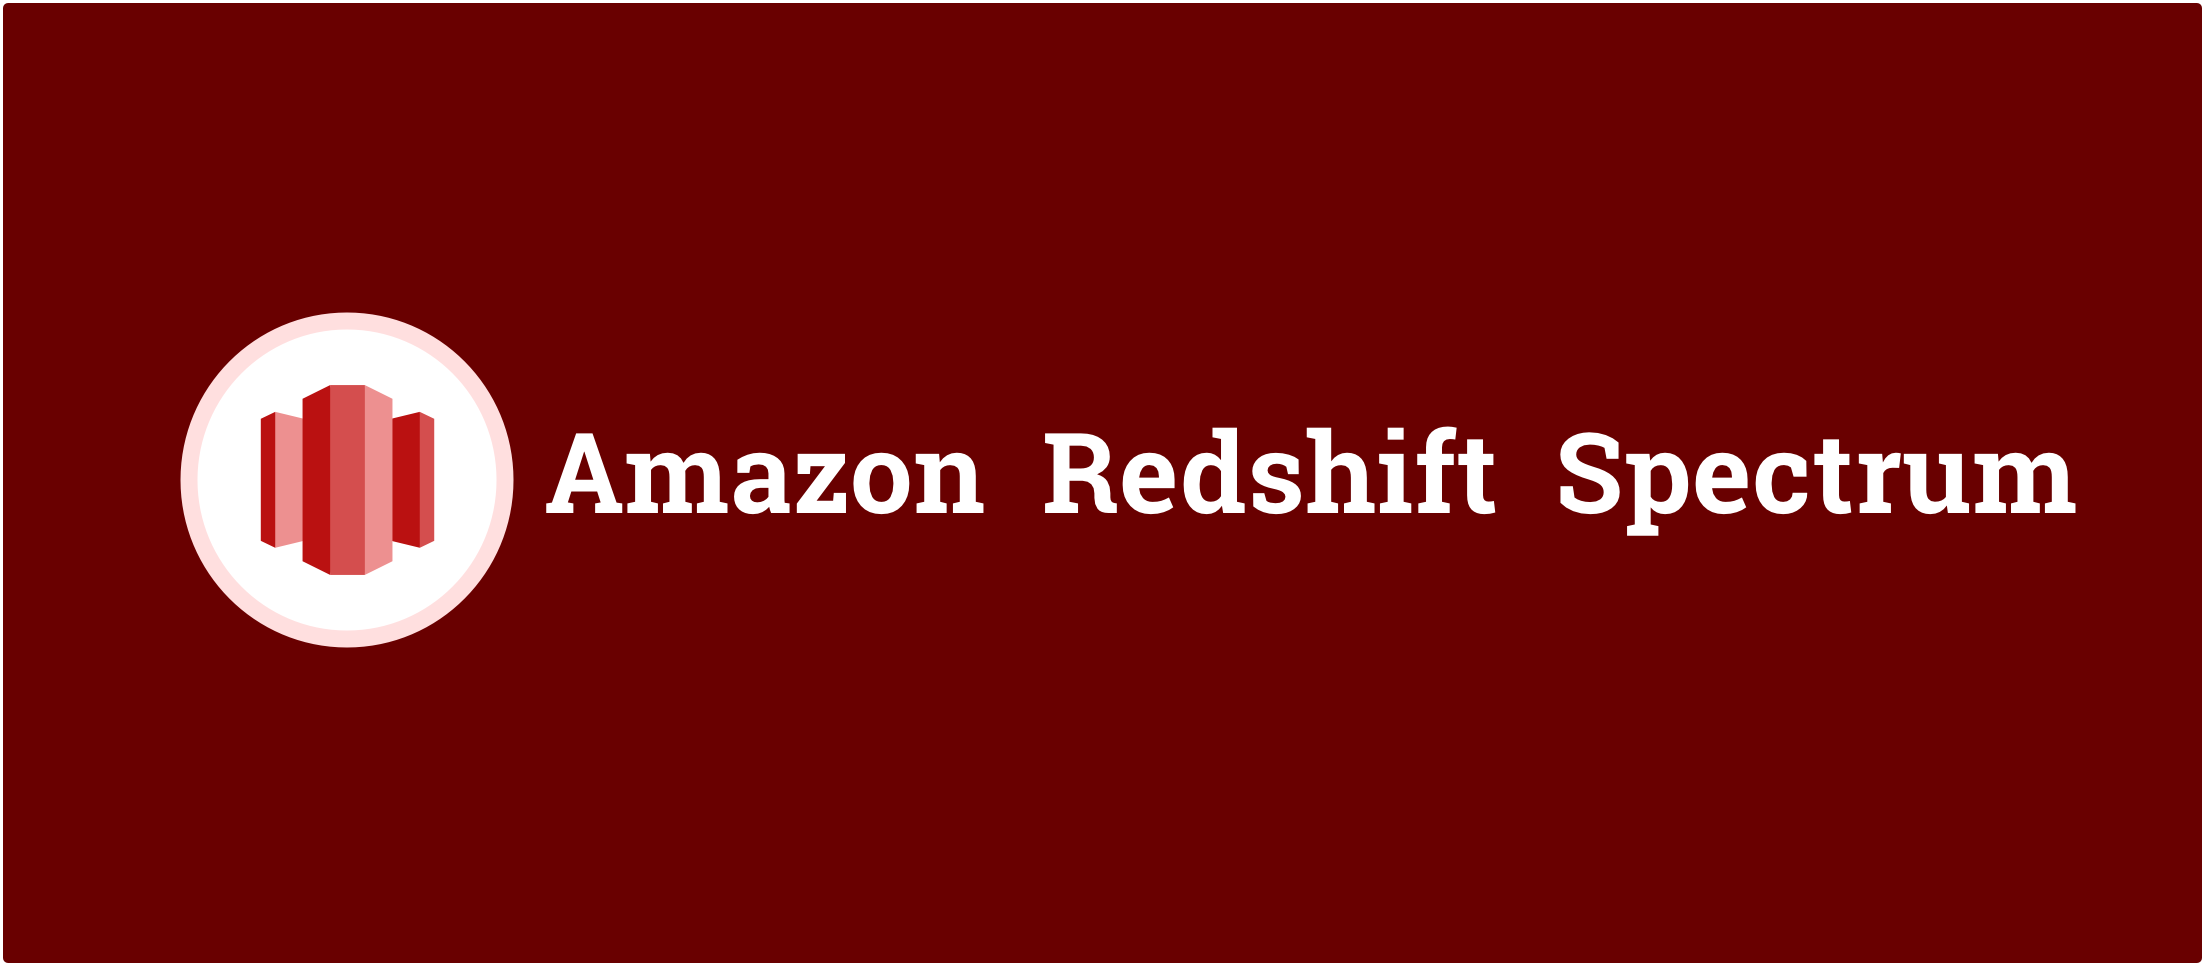 Amazon Redshift Spectrum: 10 Simple Tips That Help You